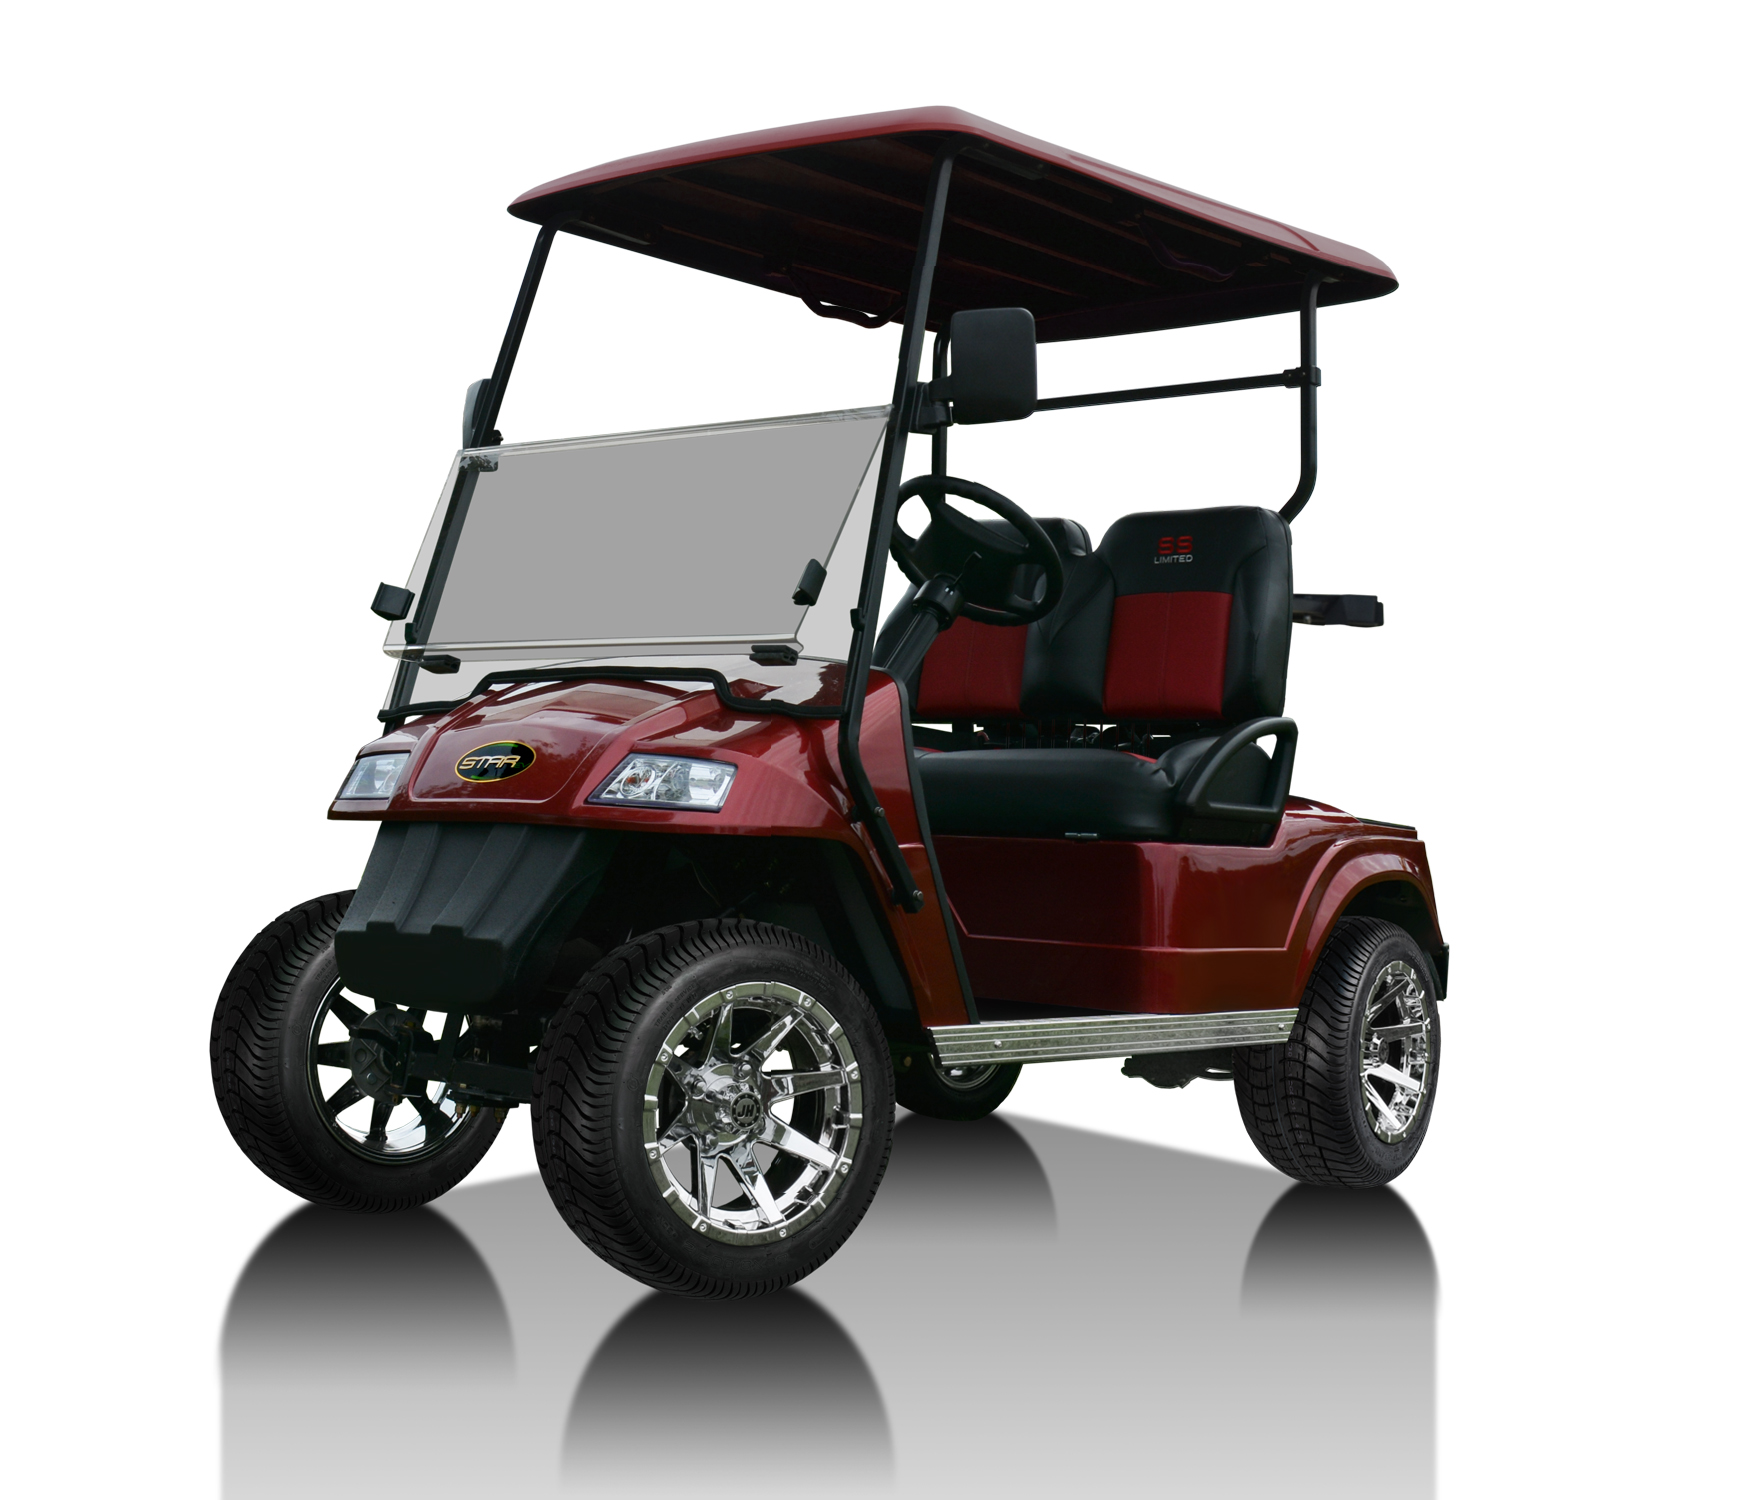 SS Limited | Golf Carts, Electric Golf Cars in Jacksonville FL | OK on heated golf mittens, heated golf seat, heated driving range, heated golf range, heated garage,